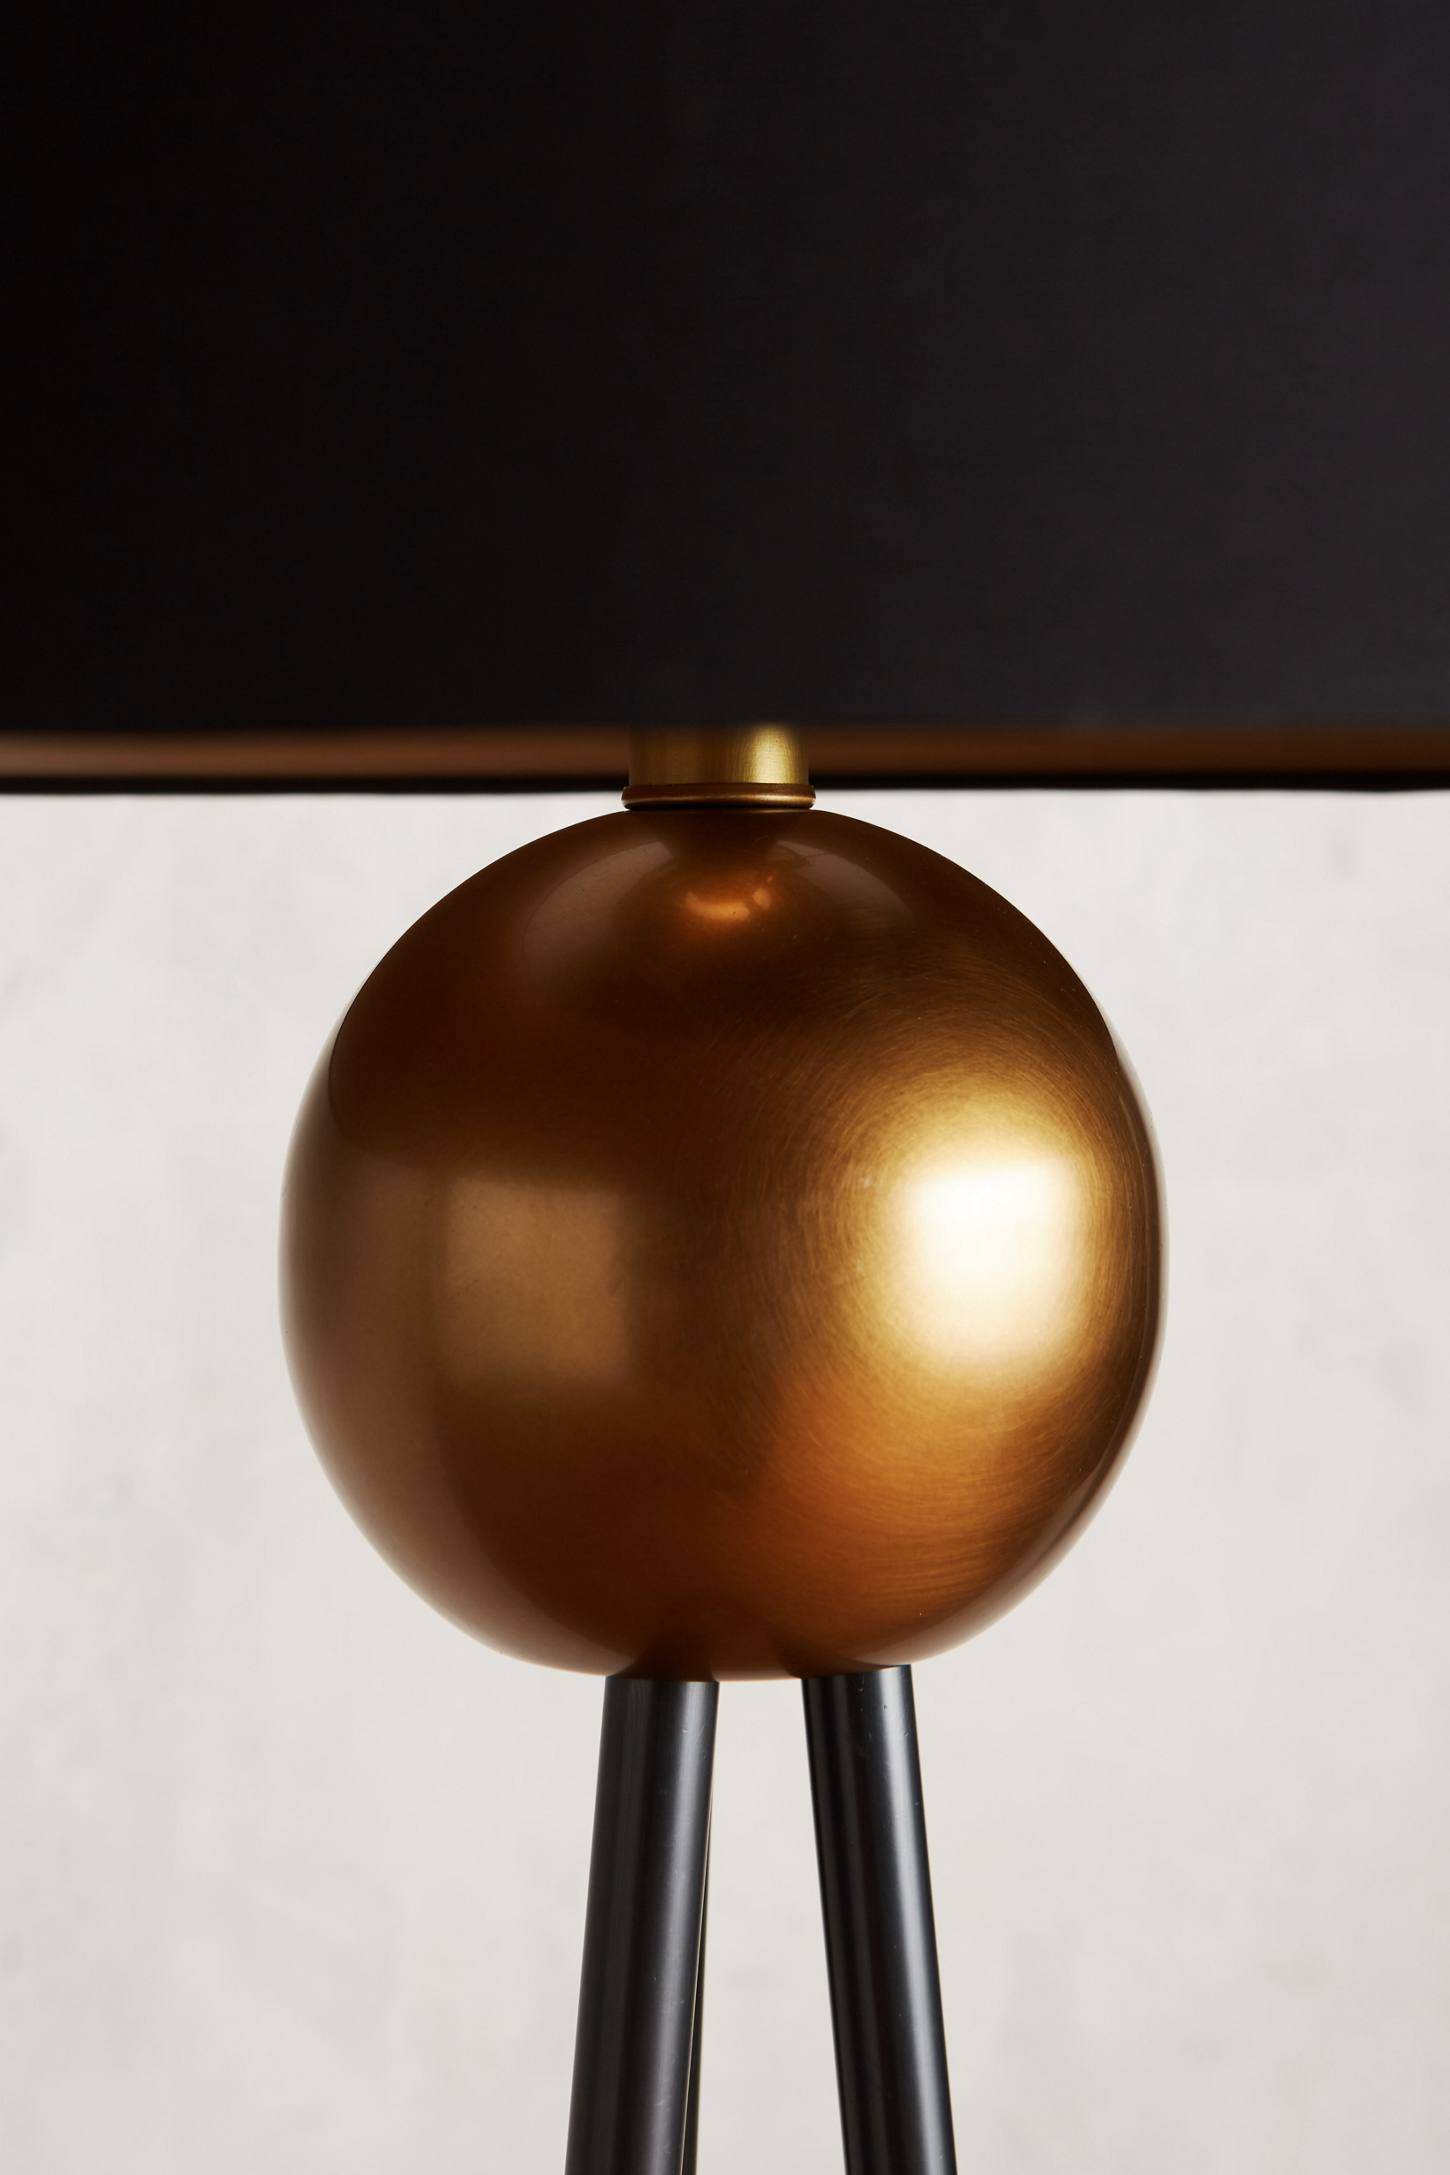 Slide View: 3: Triangulate Floor Lamp Ensemble